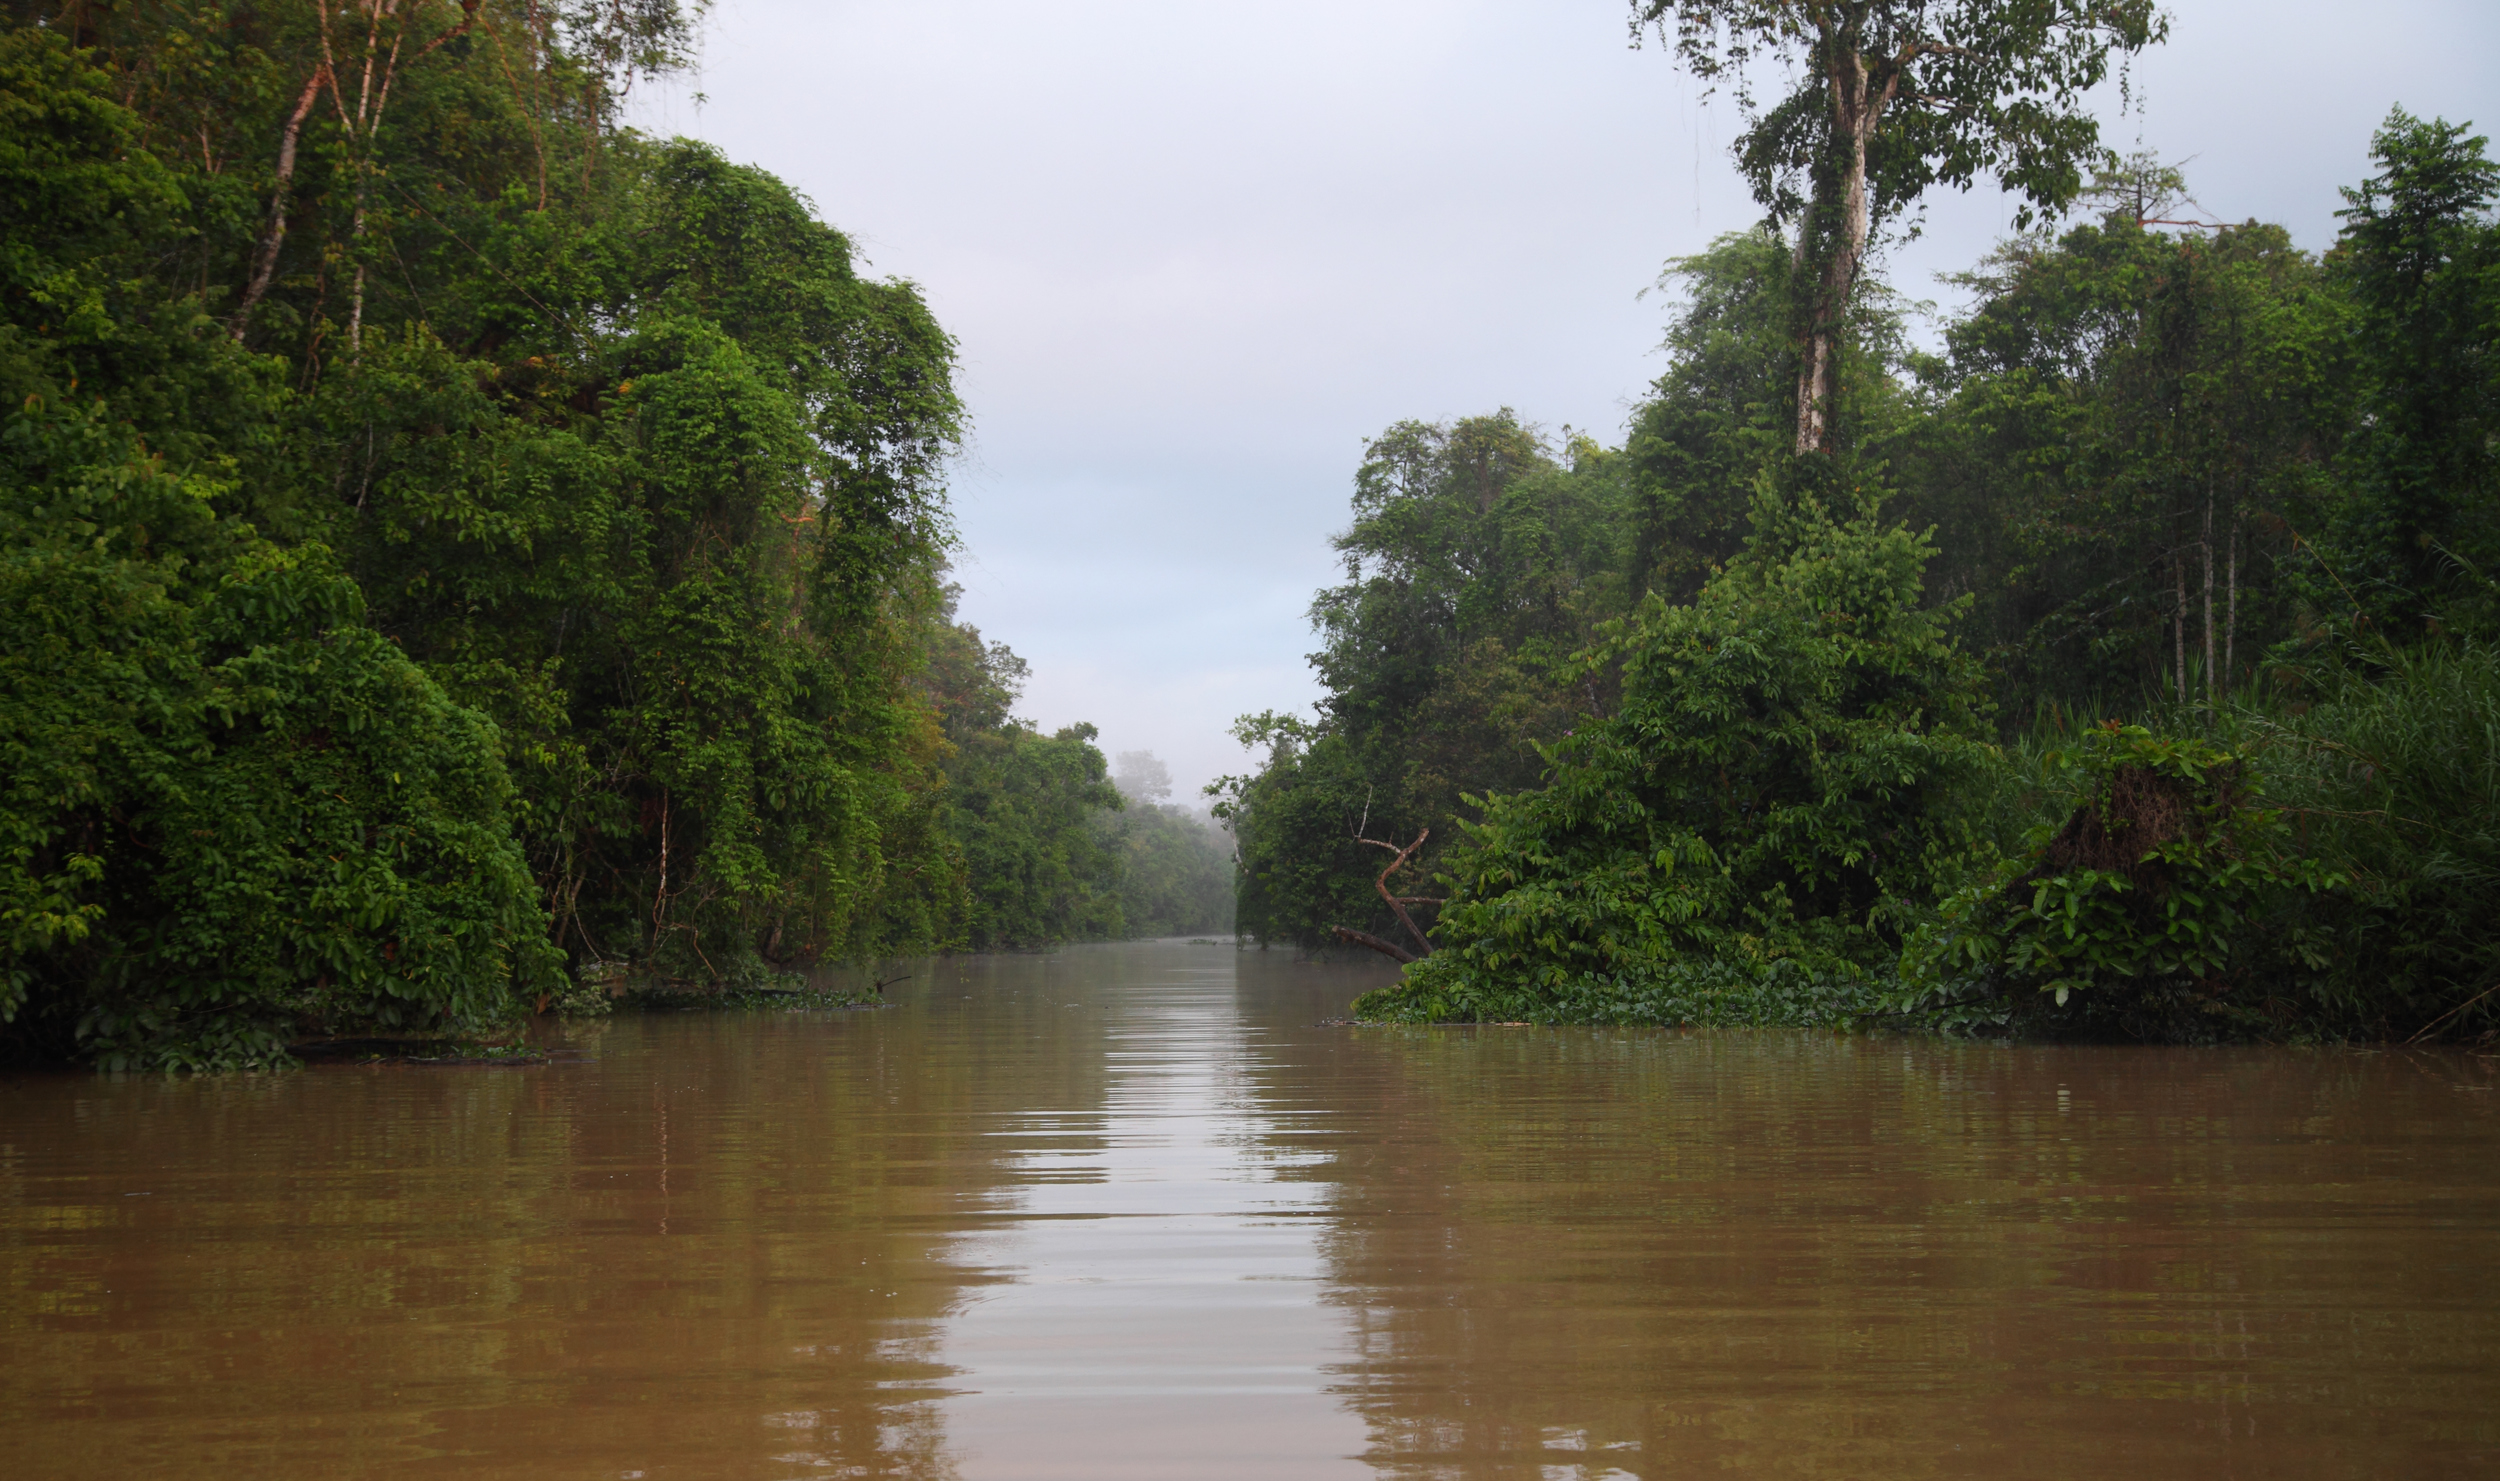 A minor tributary of the Kinabatangan.